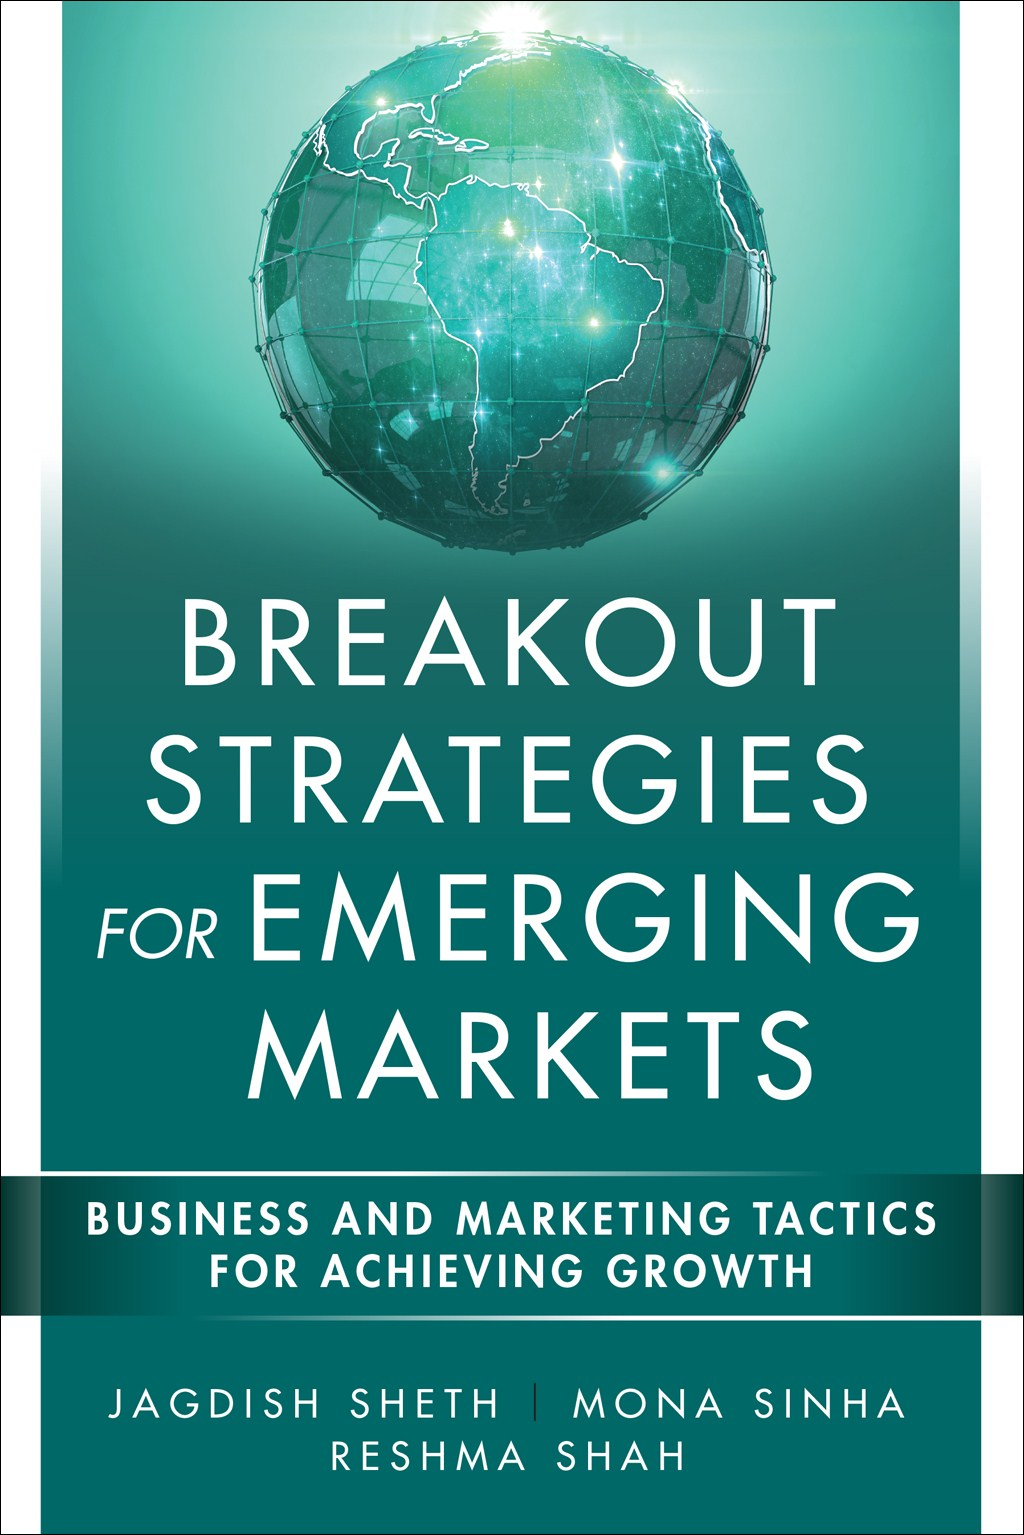 Breakout Strategies for Emerging Markets: Business and Marketing Tactics for Achieving Growth